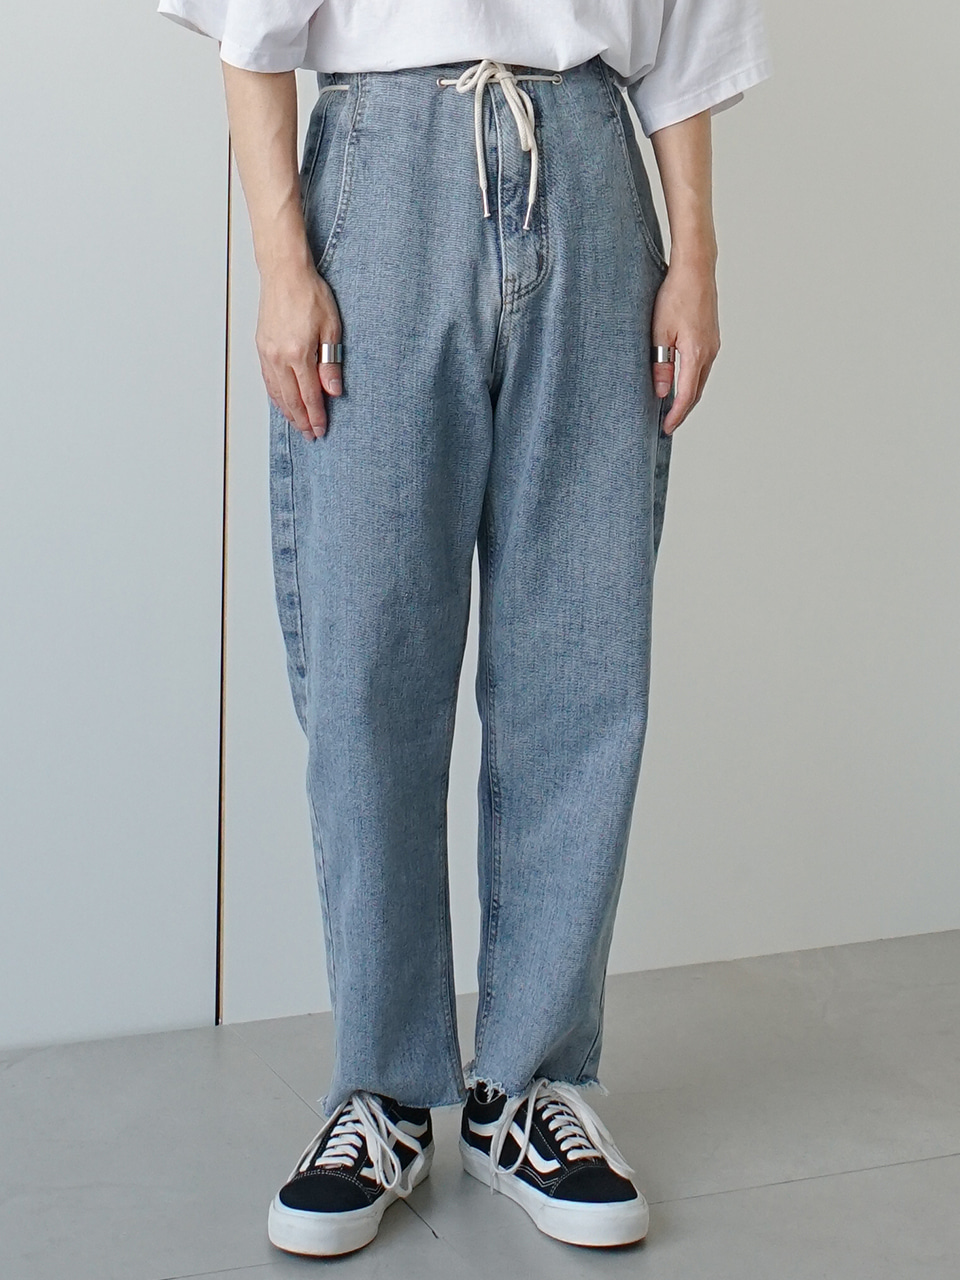 Dedus High Waist String Denim Pants